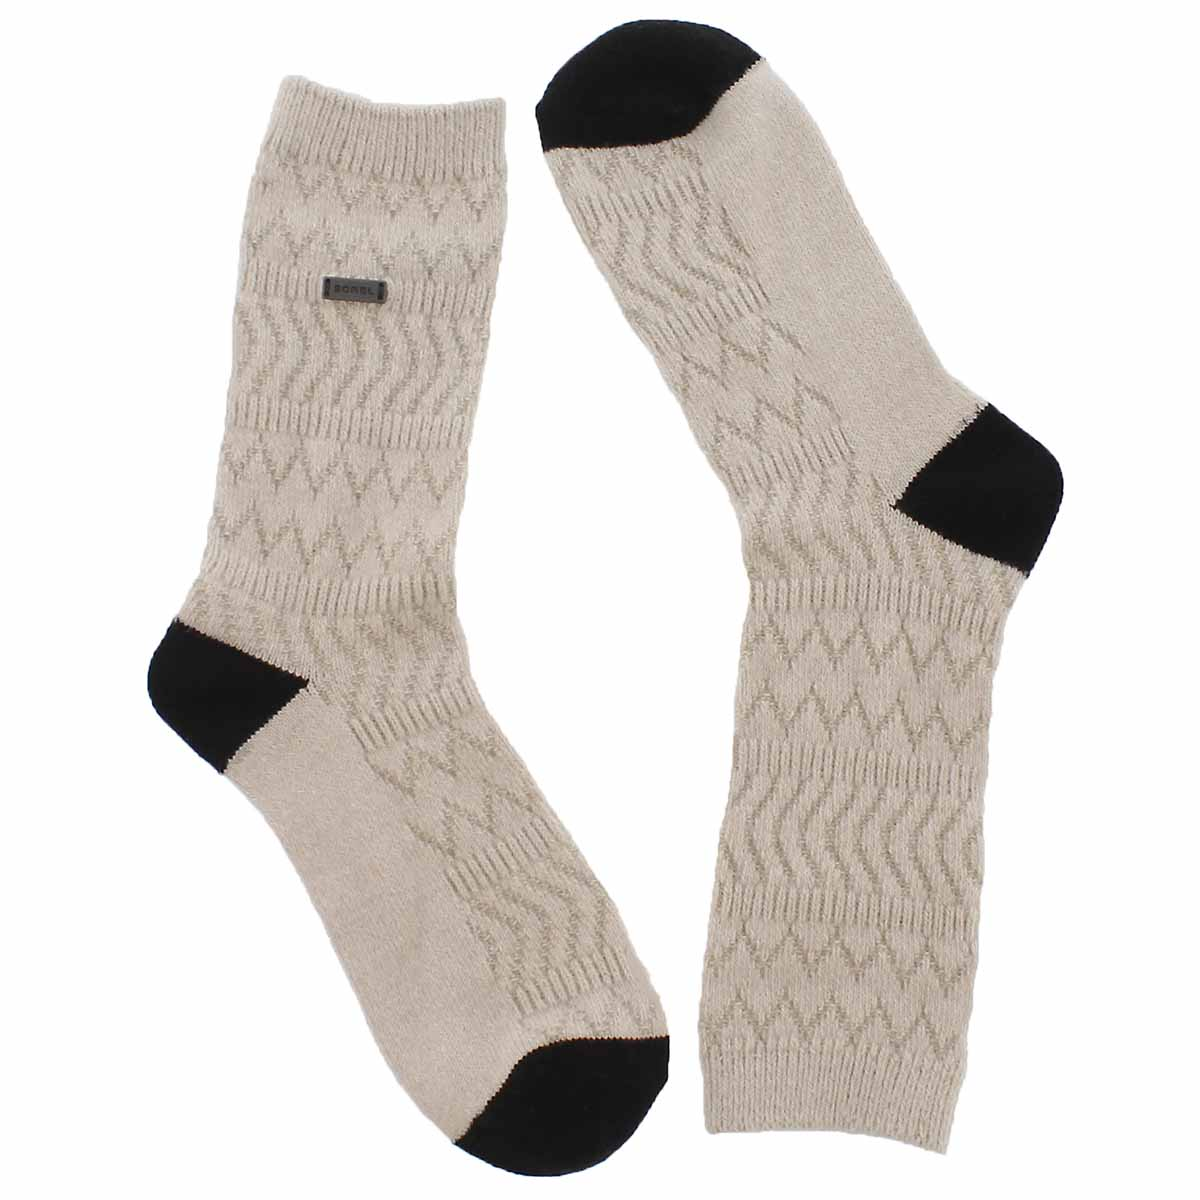 Women's BASIC MERINO WOOL fawn/wht tall socks